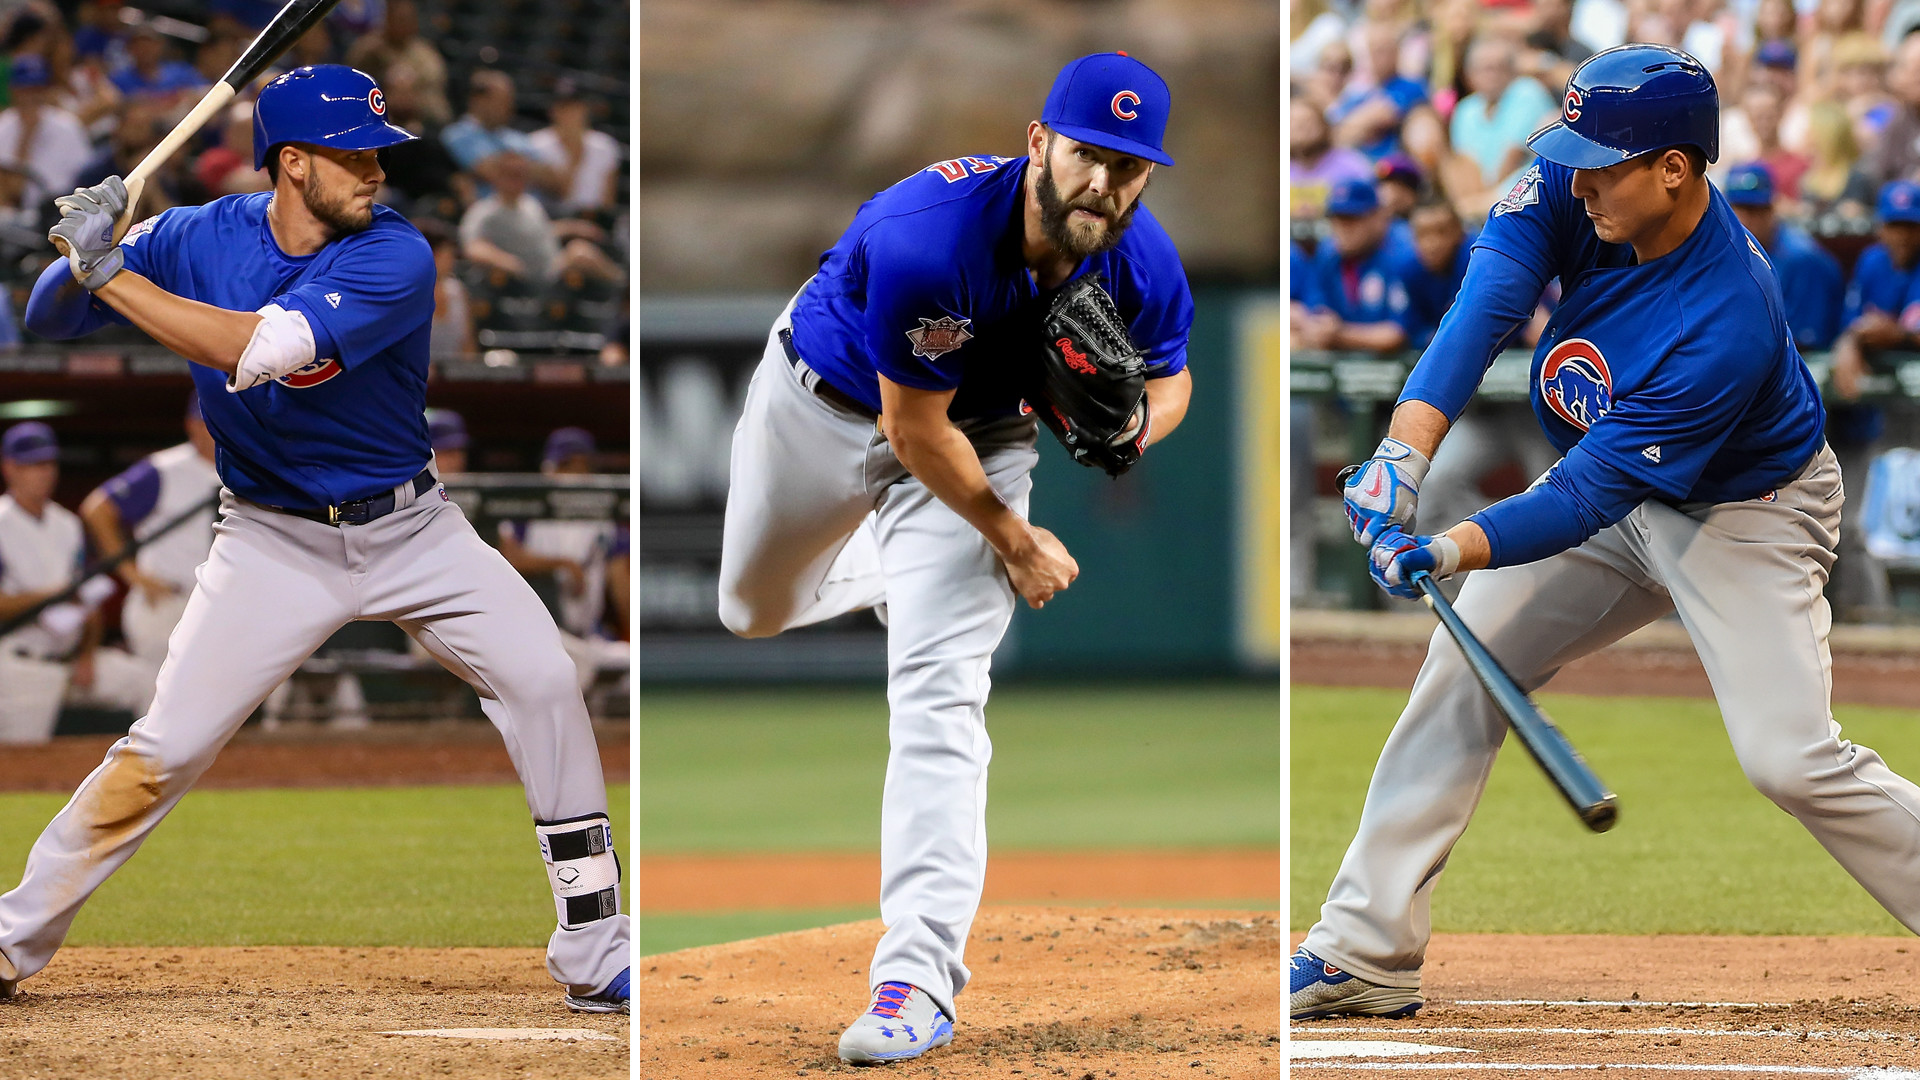 1920x1080 Cubs delivering on hype in all facets of the game | MLB | Sporting News